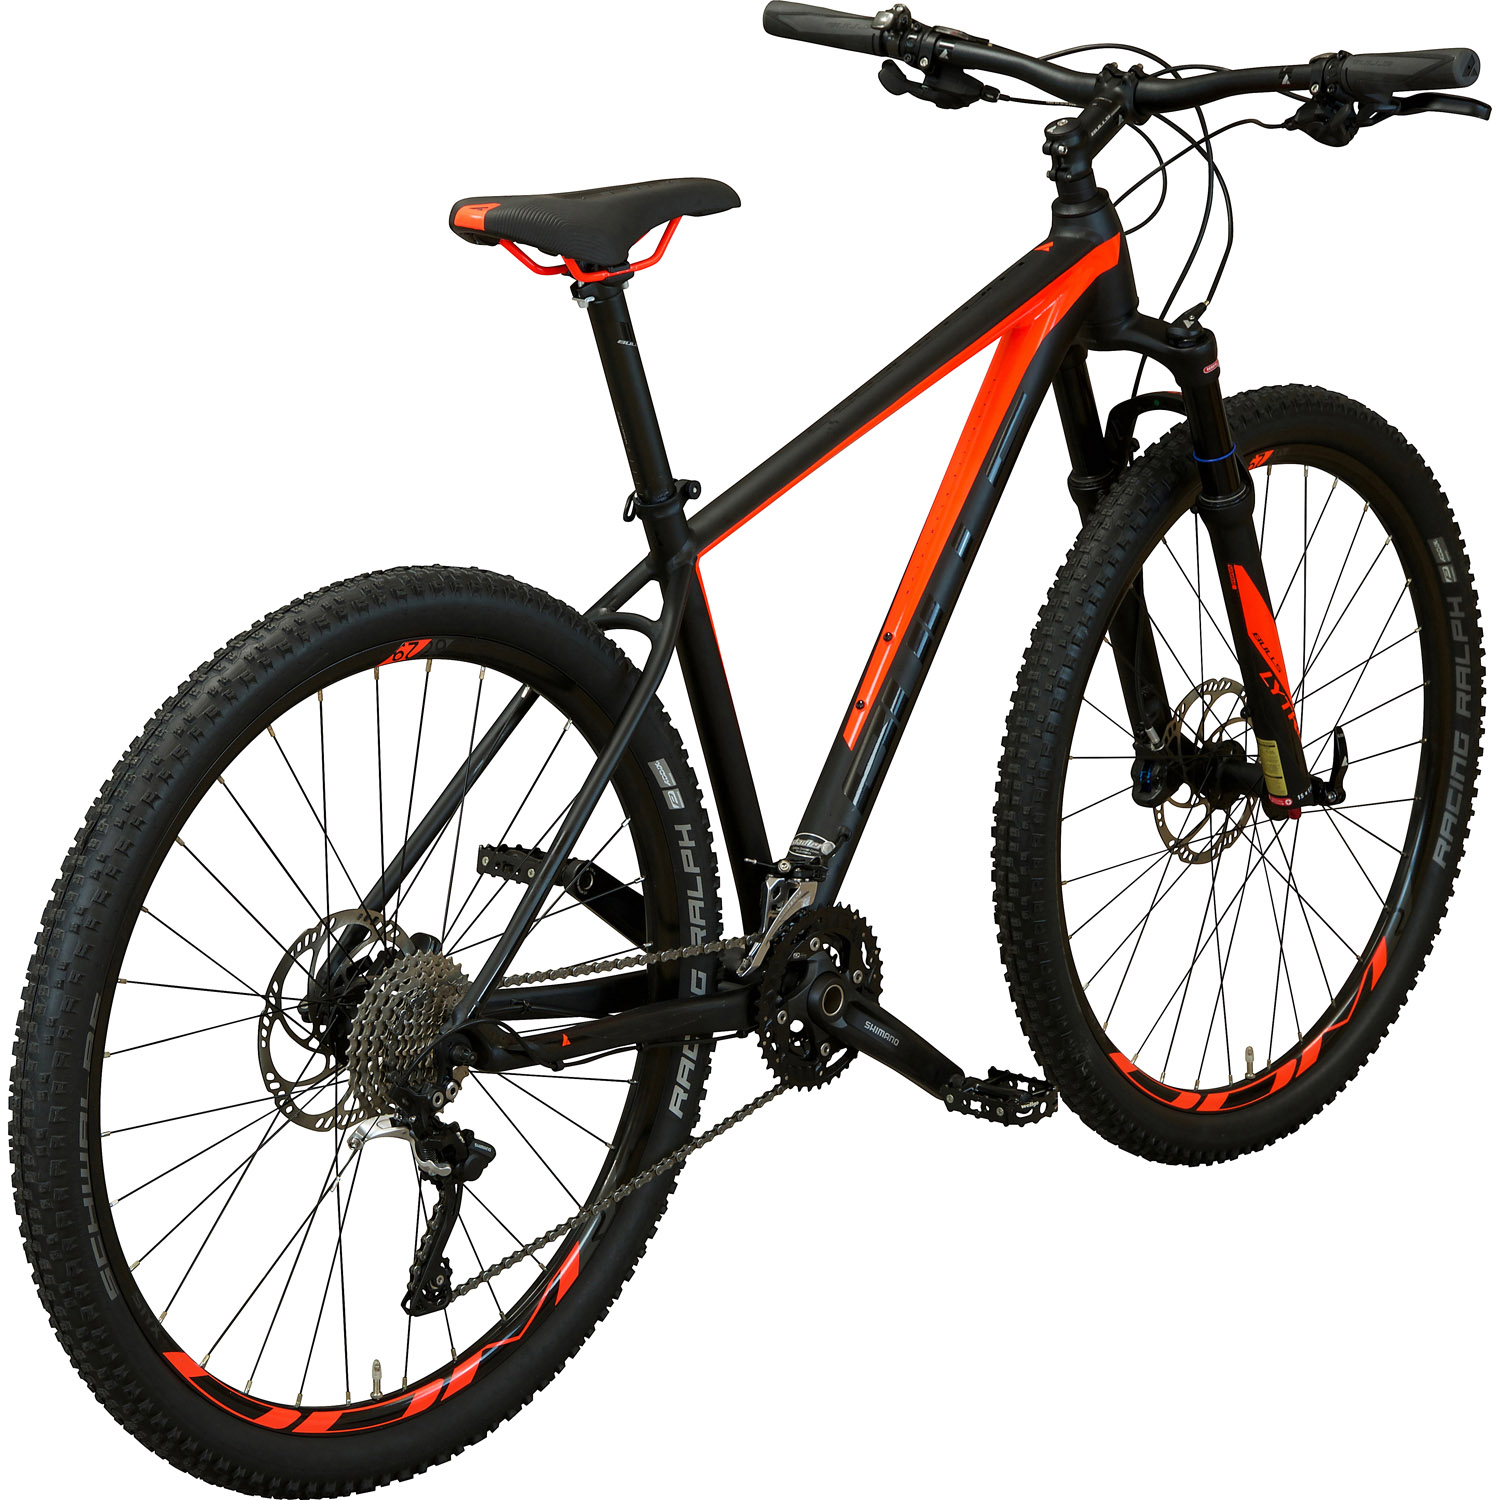 bulls copperhead 3 hardtail mountainbike 29 zoll 41 cm. Black Bedroom Furniture Sets. Home Design Ideas